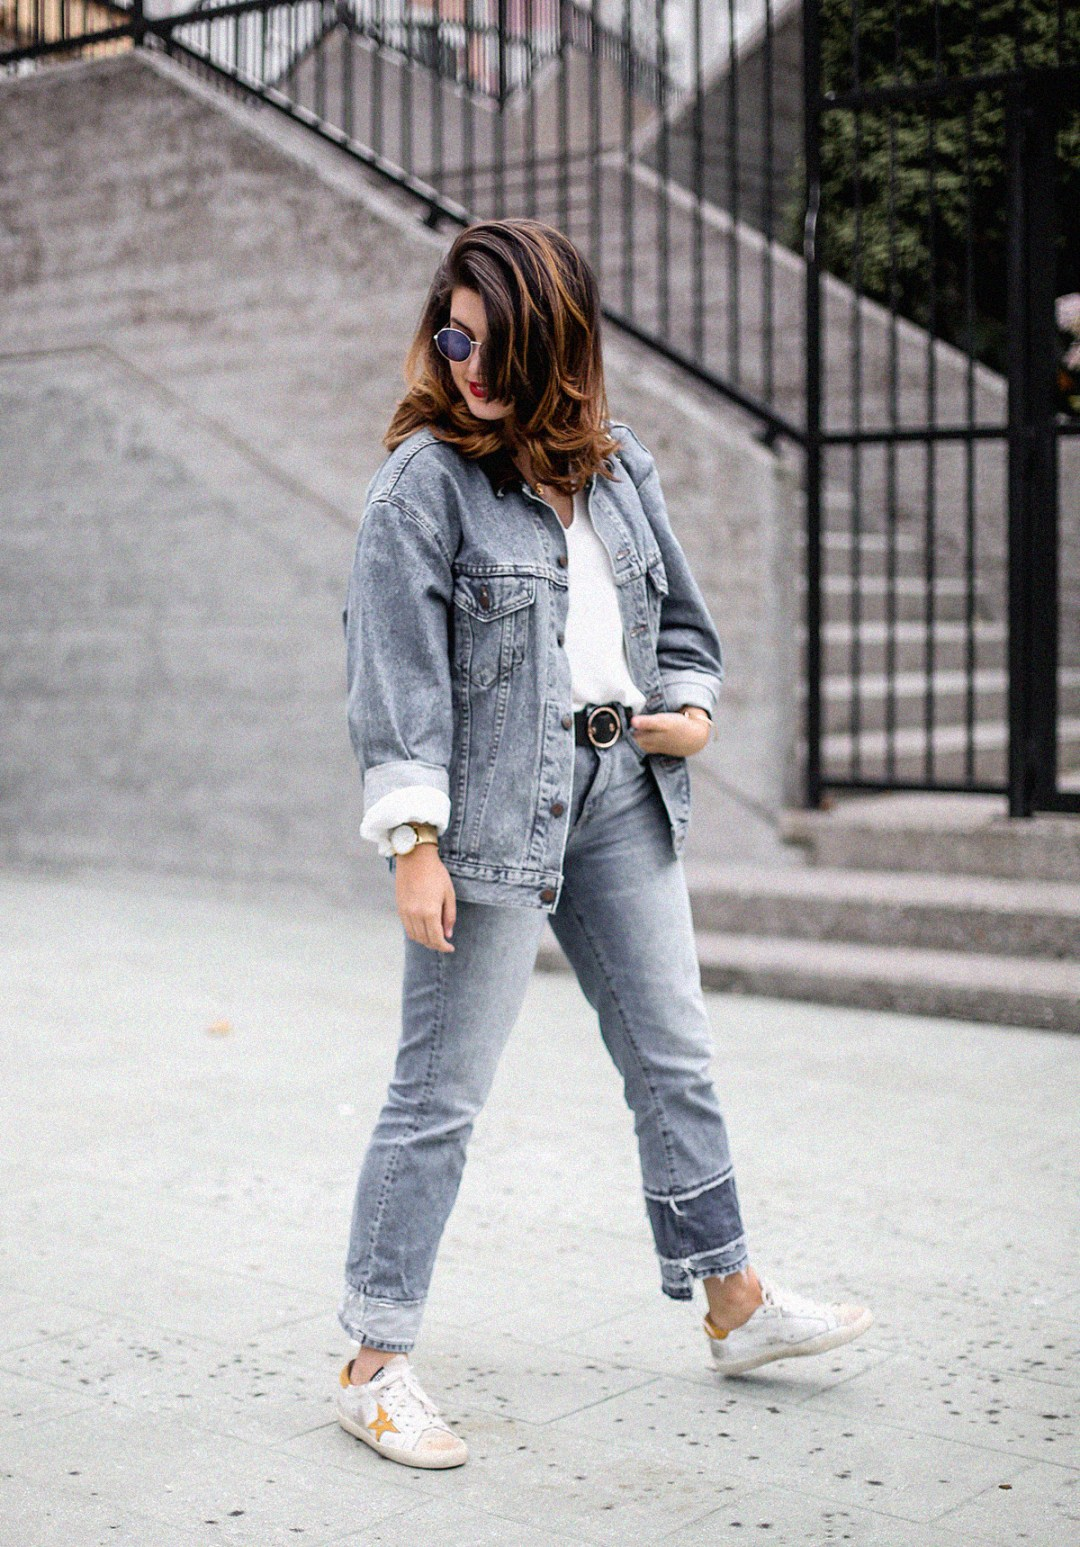 double-denim-look-vintage-jacket-levis-golden-goose-sneakers-outfit13